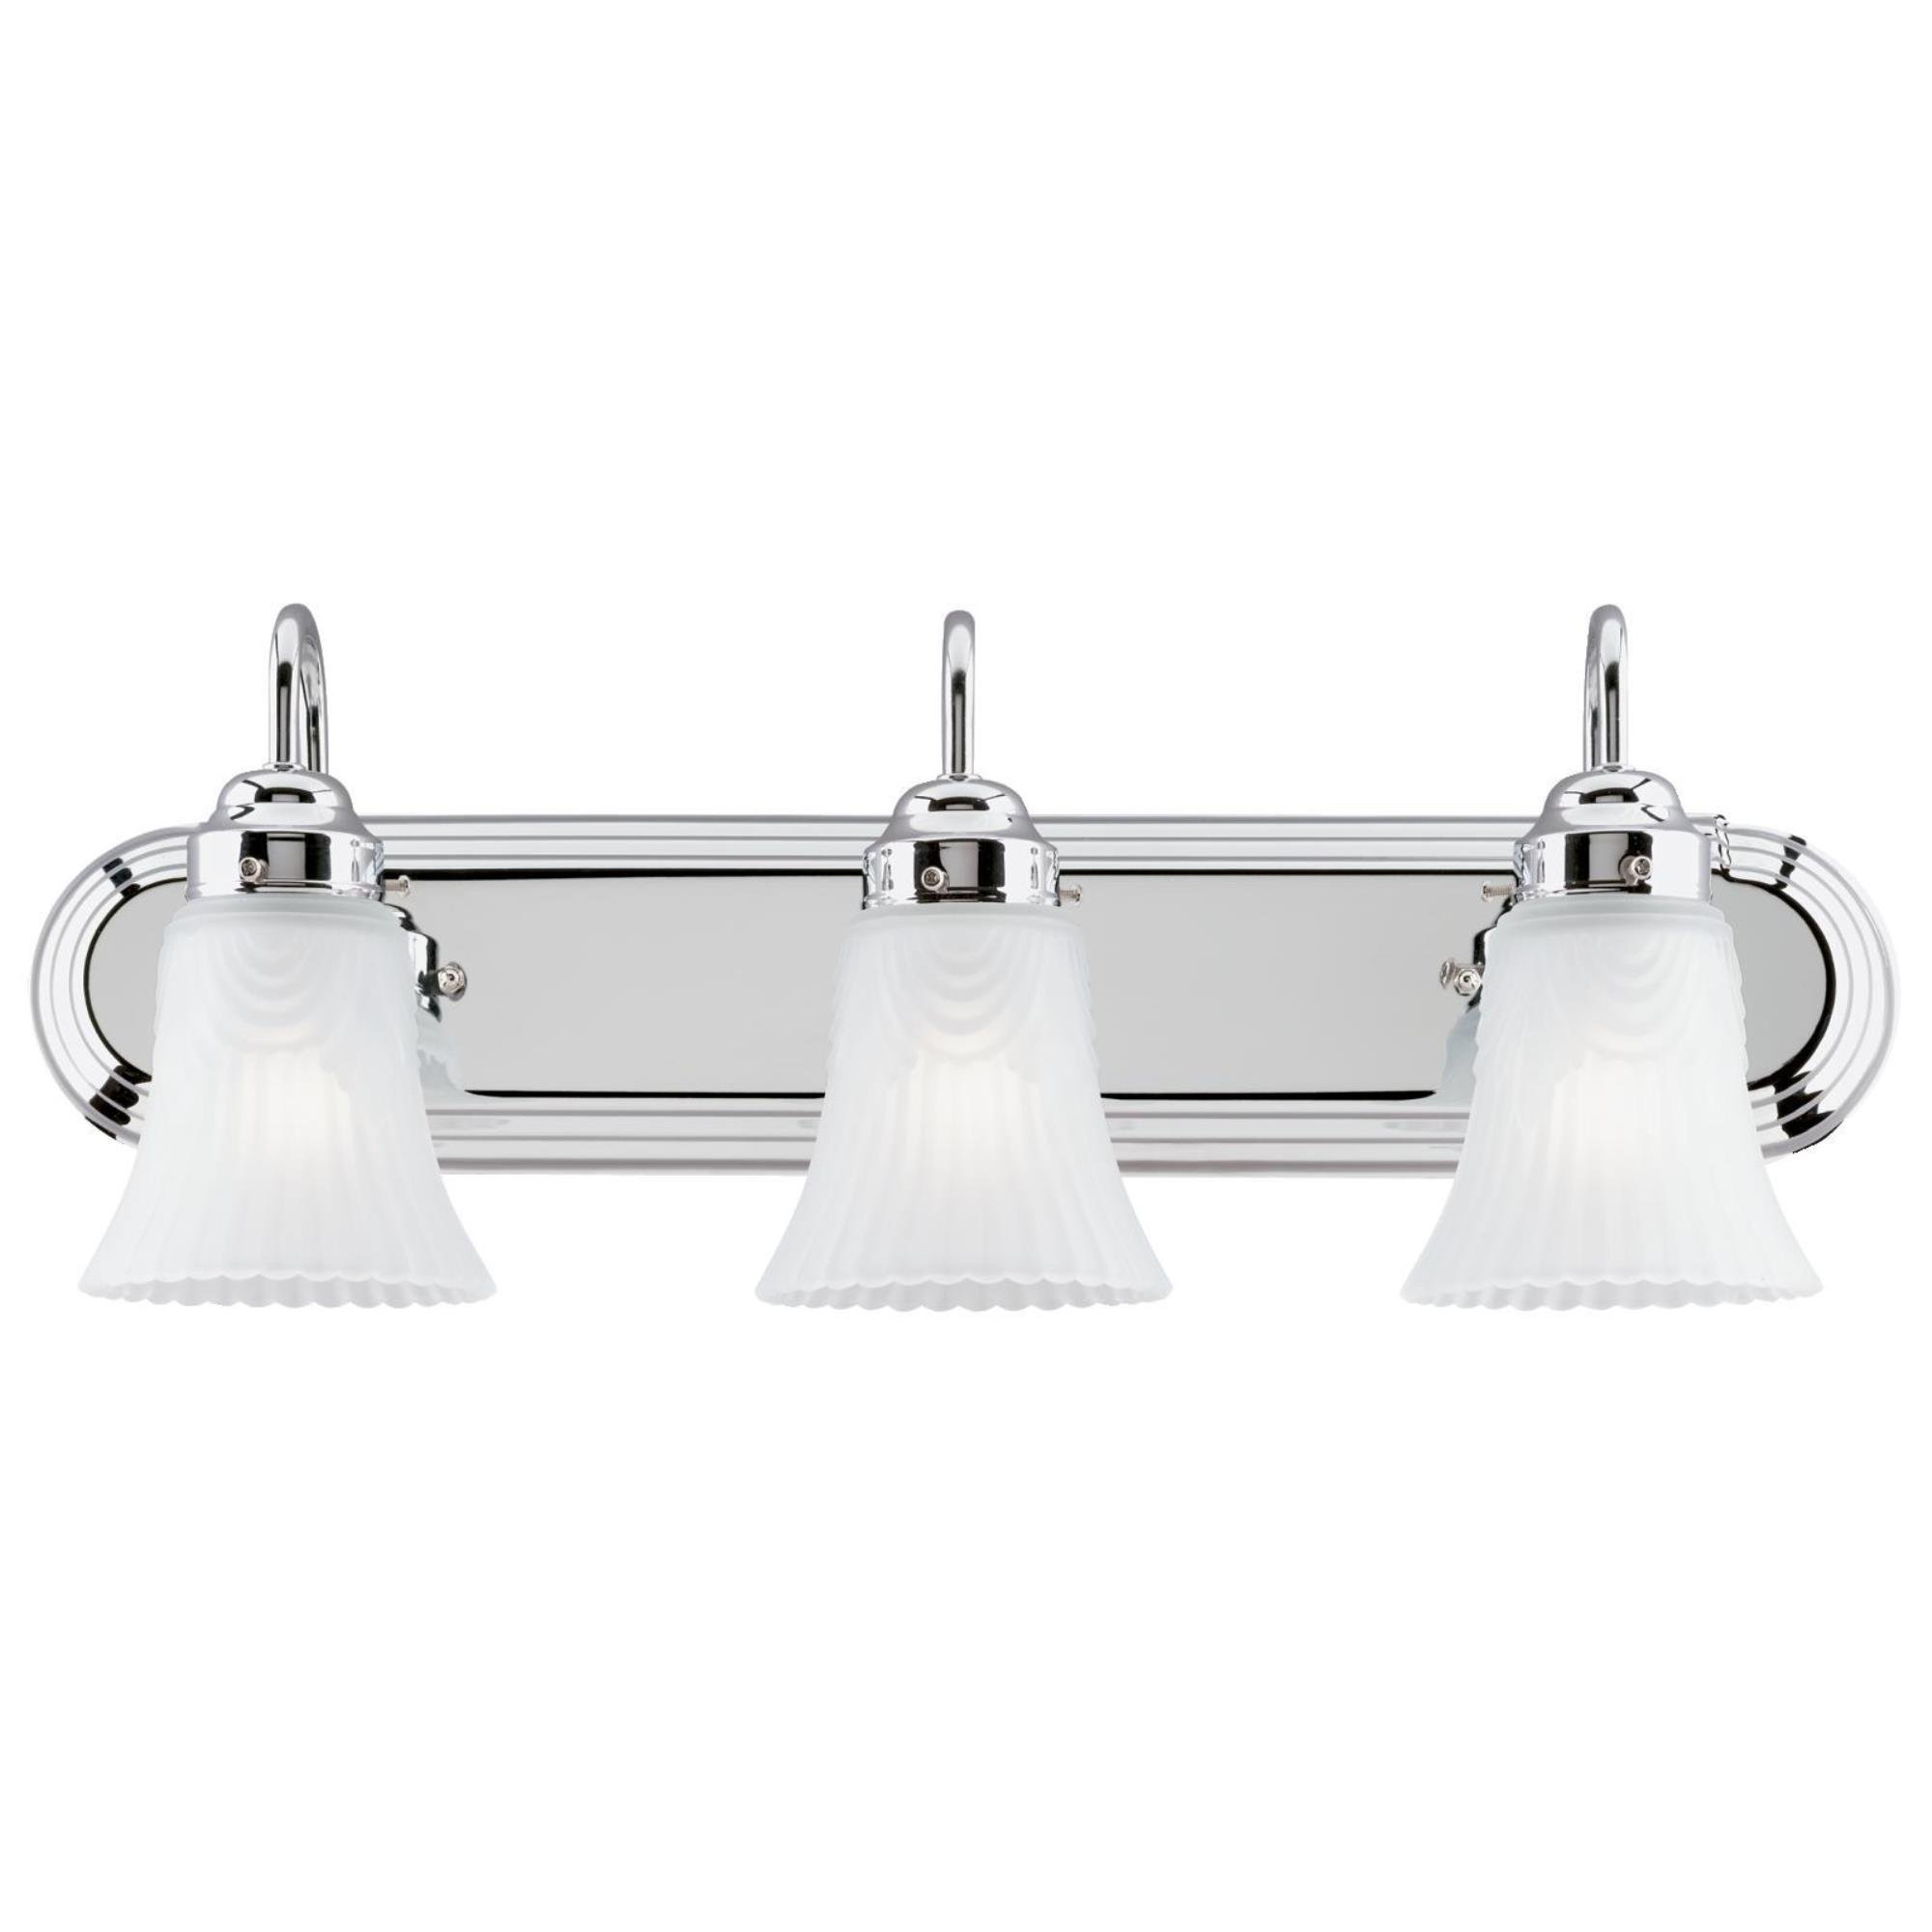 Westinghouse 6652200 3 Light Bracket Bathroom Light